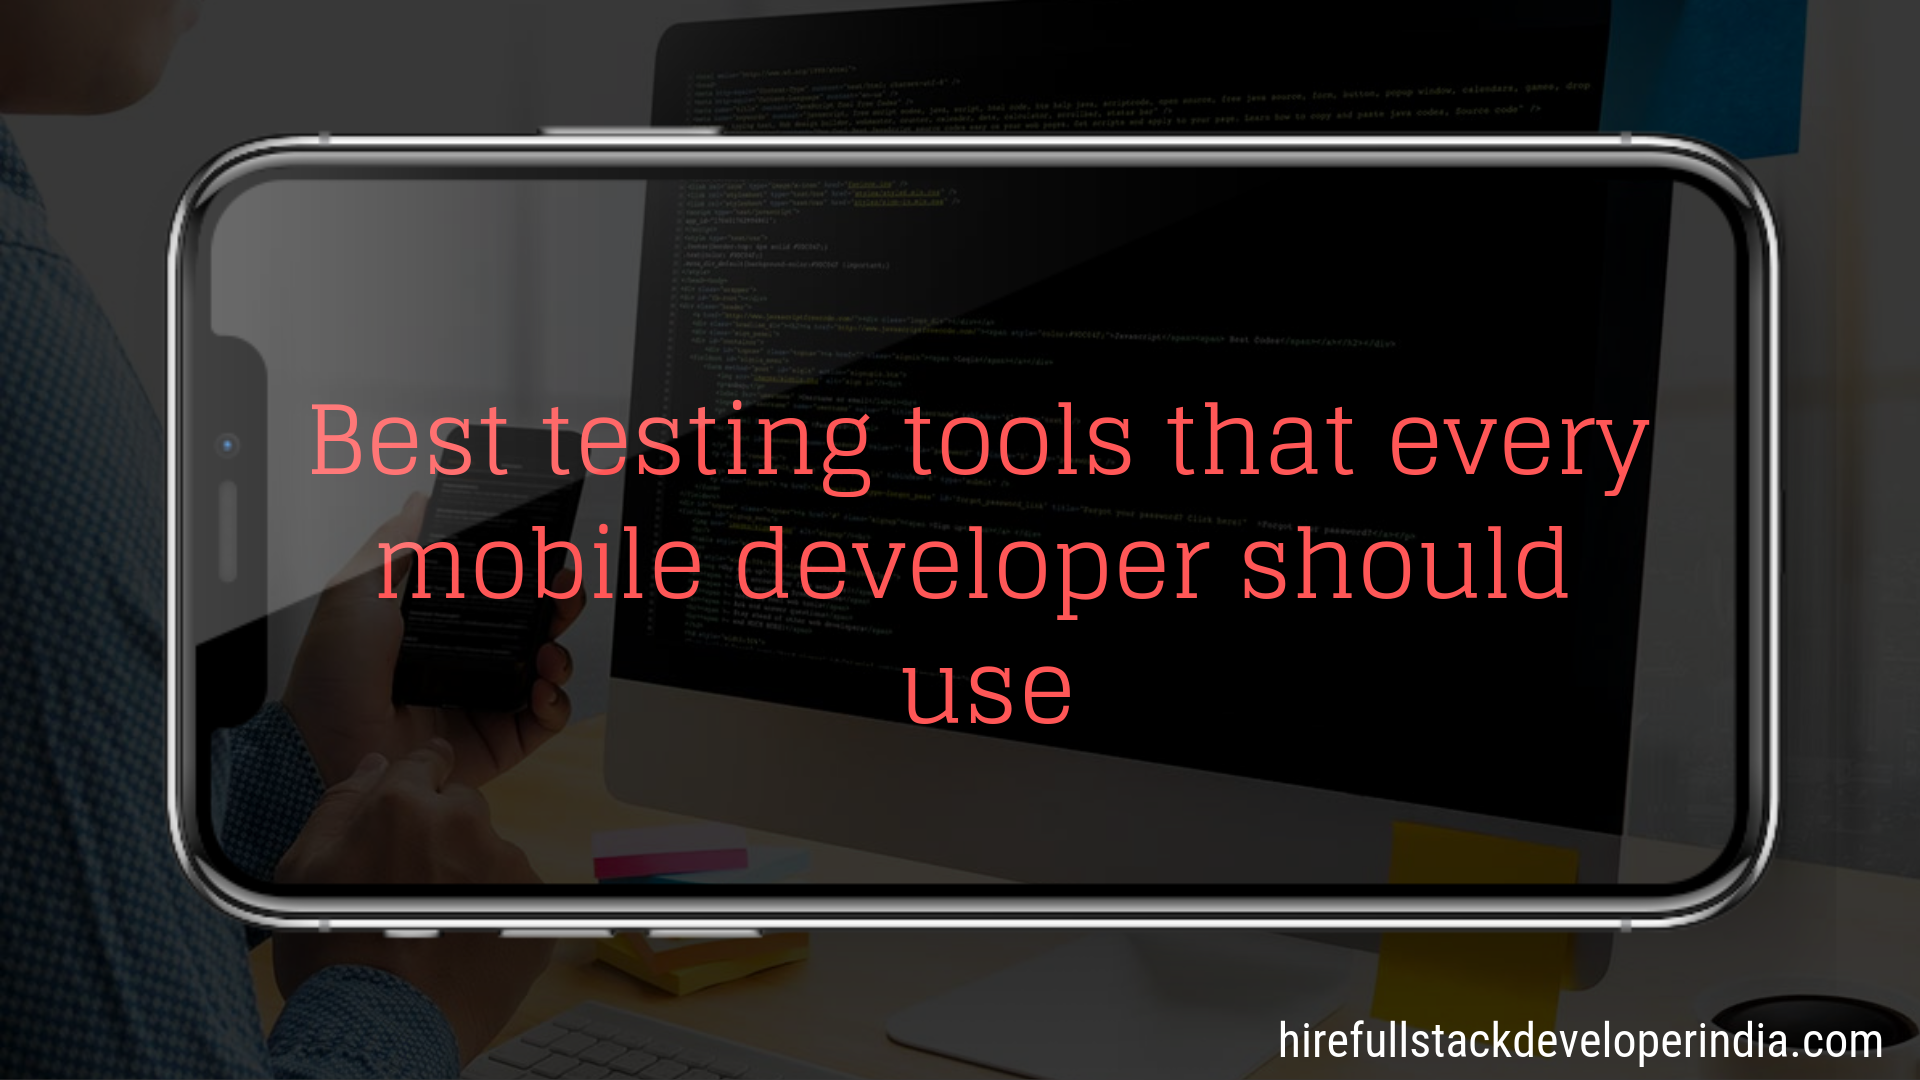 BEST TESTING TOOLS THAT EVERY MOBILE DEVELOPER SHOULD USE: - Image 1